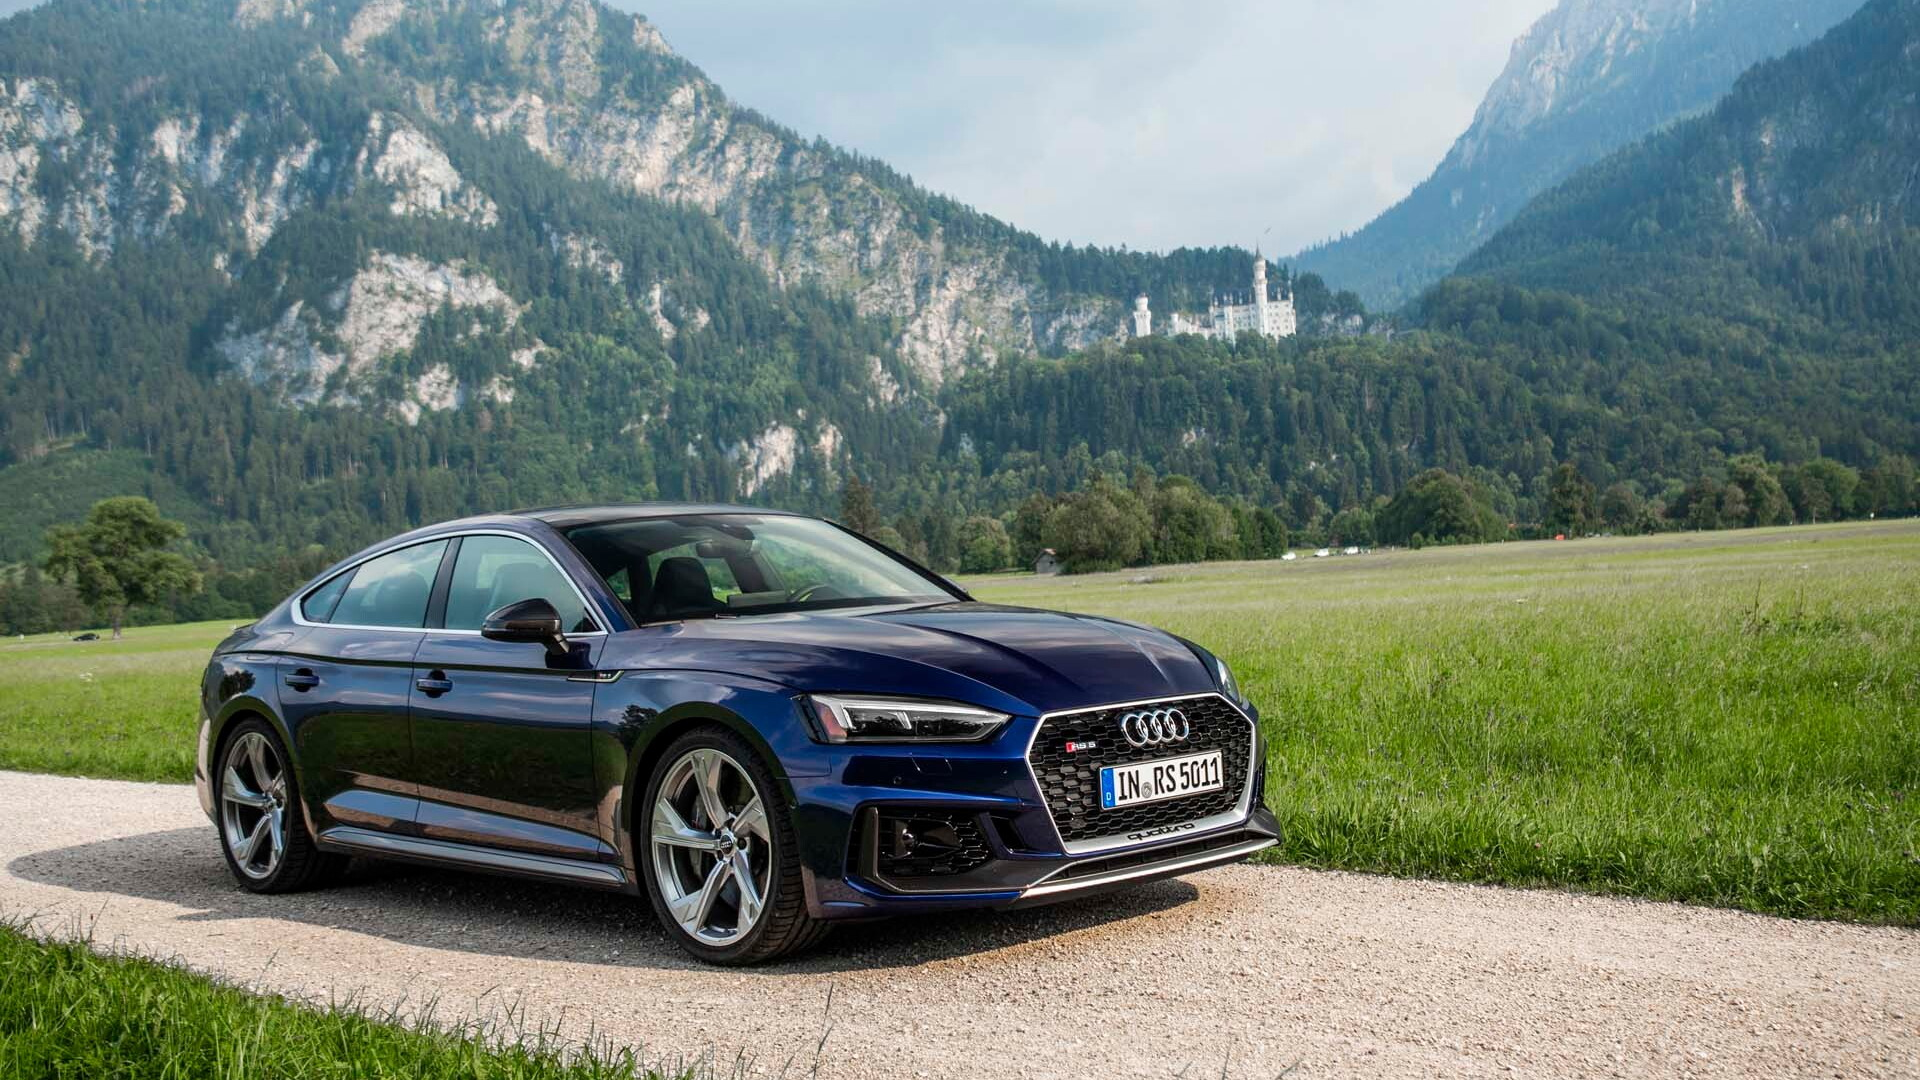 2019 Audi RS 5 Sportback first drive